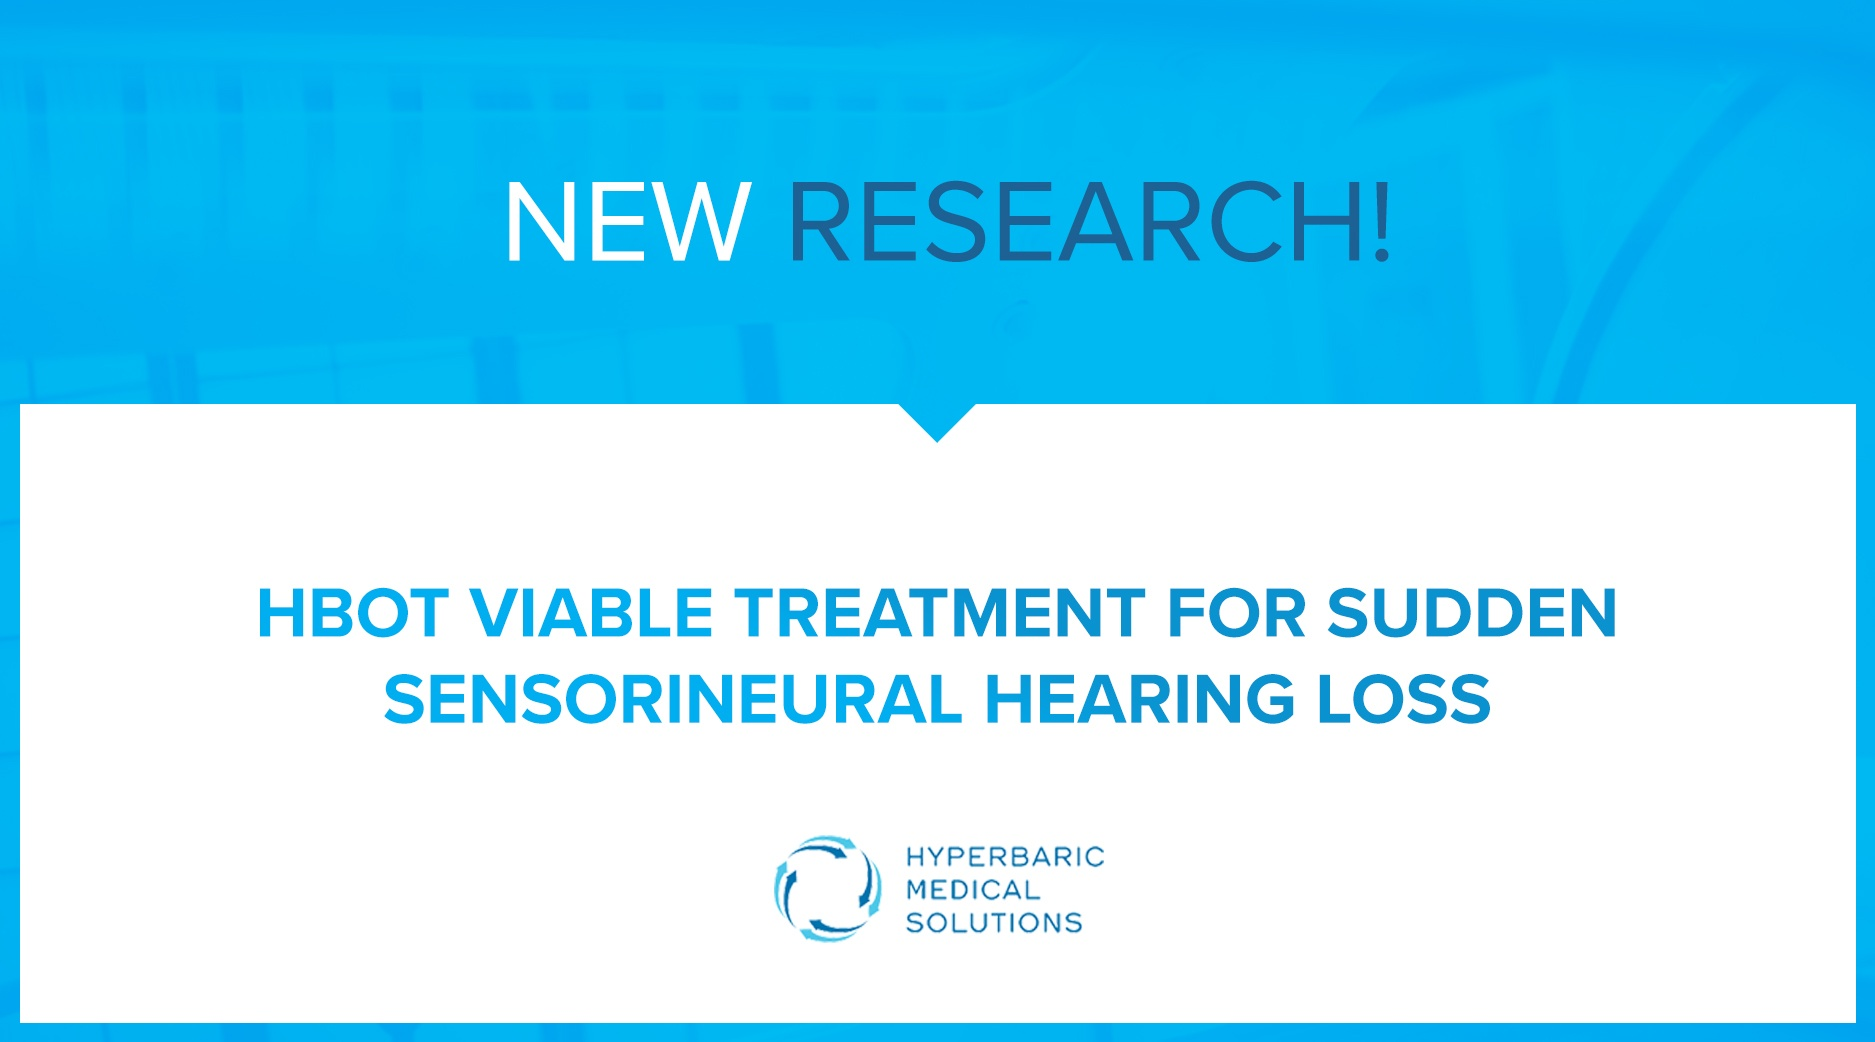 New Research: HBOT Viable Treatment for Sudden Sensorineural Hearing Loss